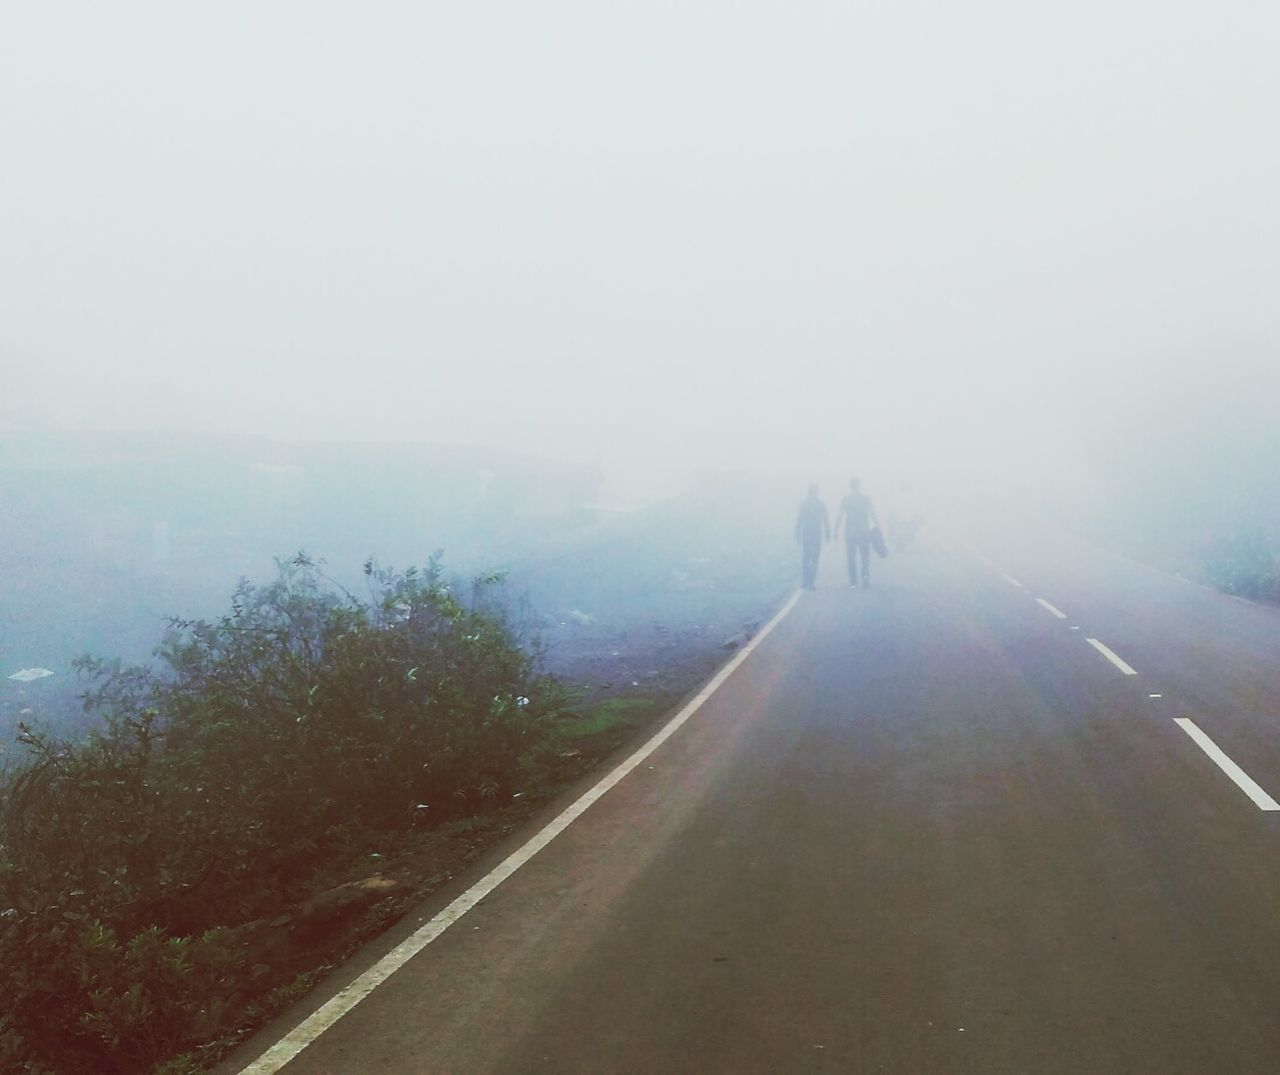 fog, foggy, nature, day, road, mist, landscape, the way forward, walking, real people, outdoors, two people, men, beauty in nature, scenics, full length, hazy, tree, sky, people